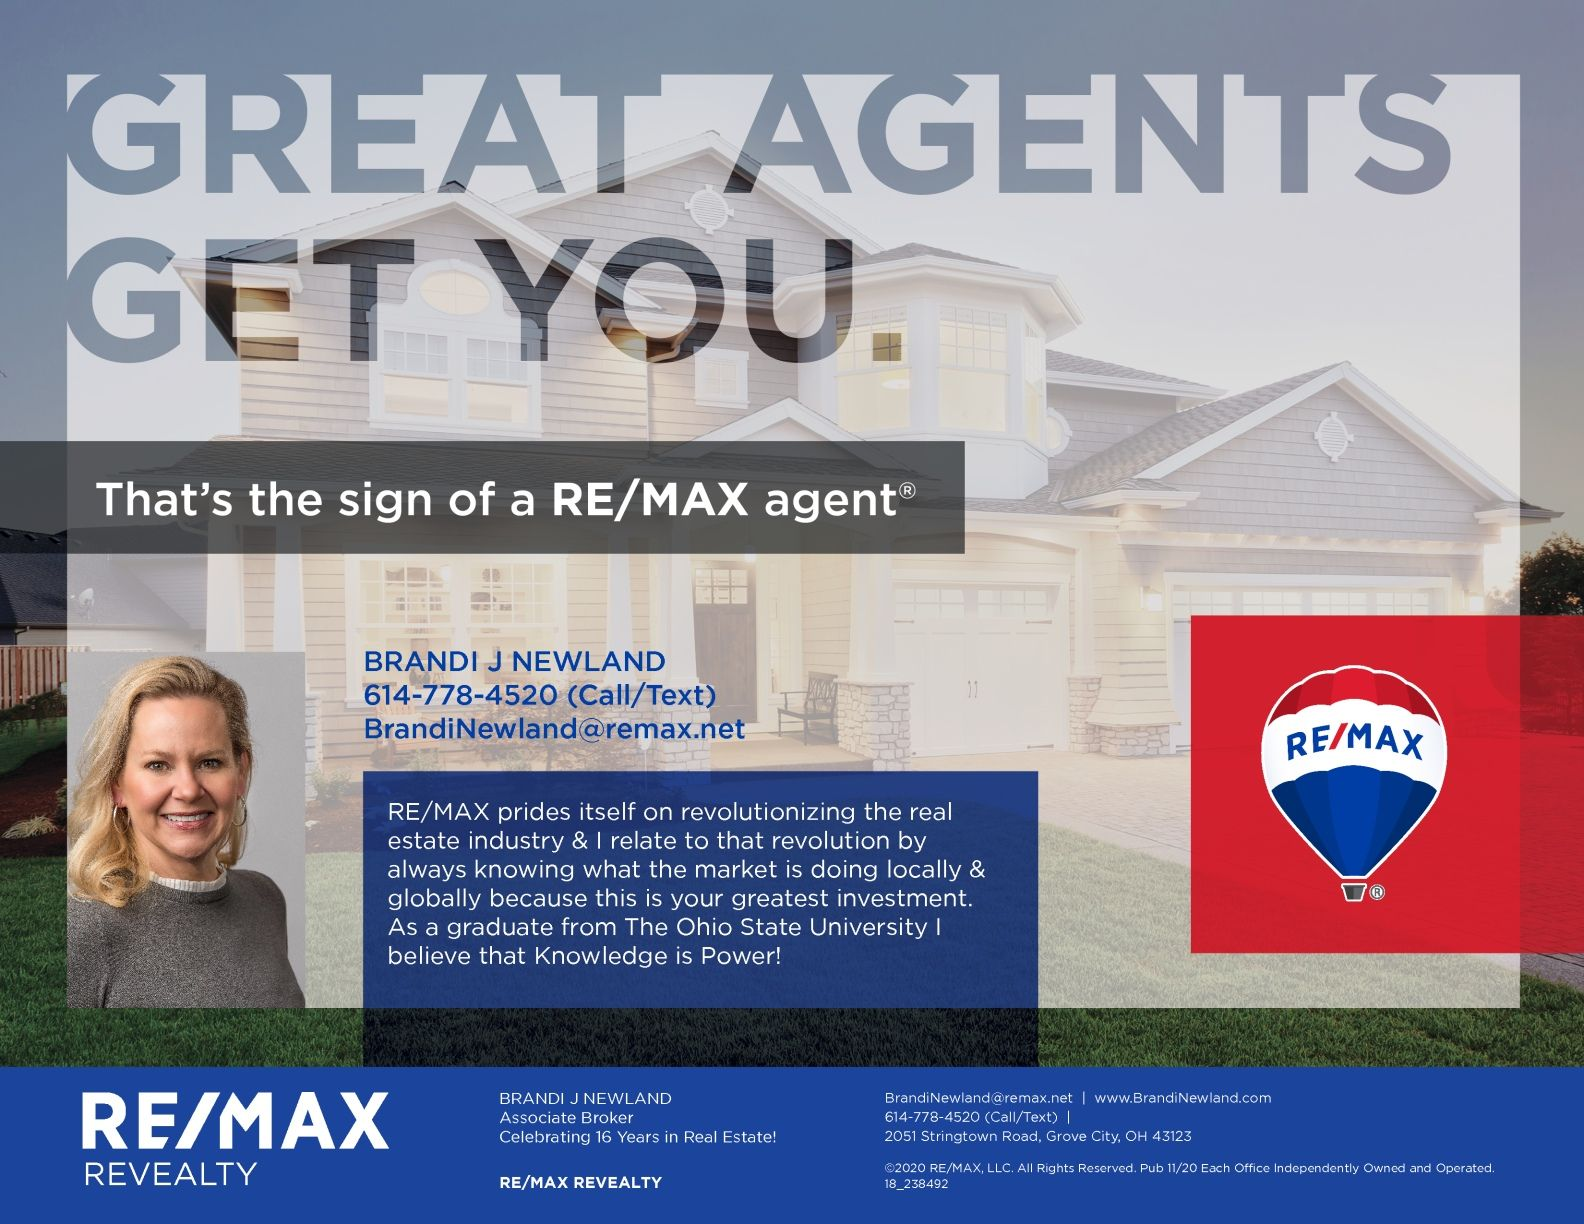 As A Graduate From The Ohio State University I Believe That Knowledge Is Power Cbus 6147784520 Brandi J Newland The Ohio State University Newland Remax